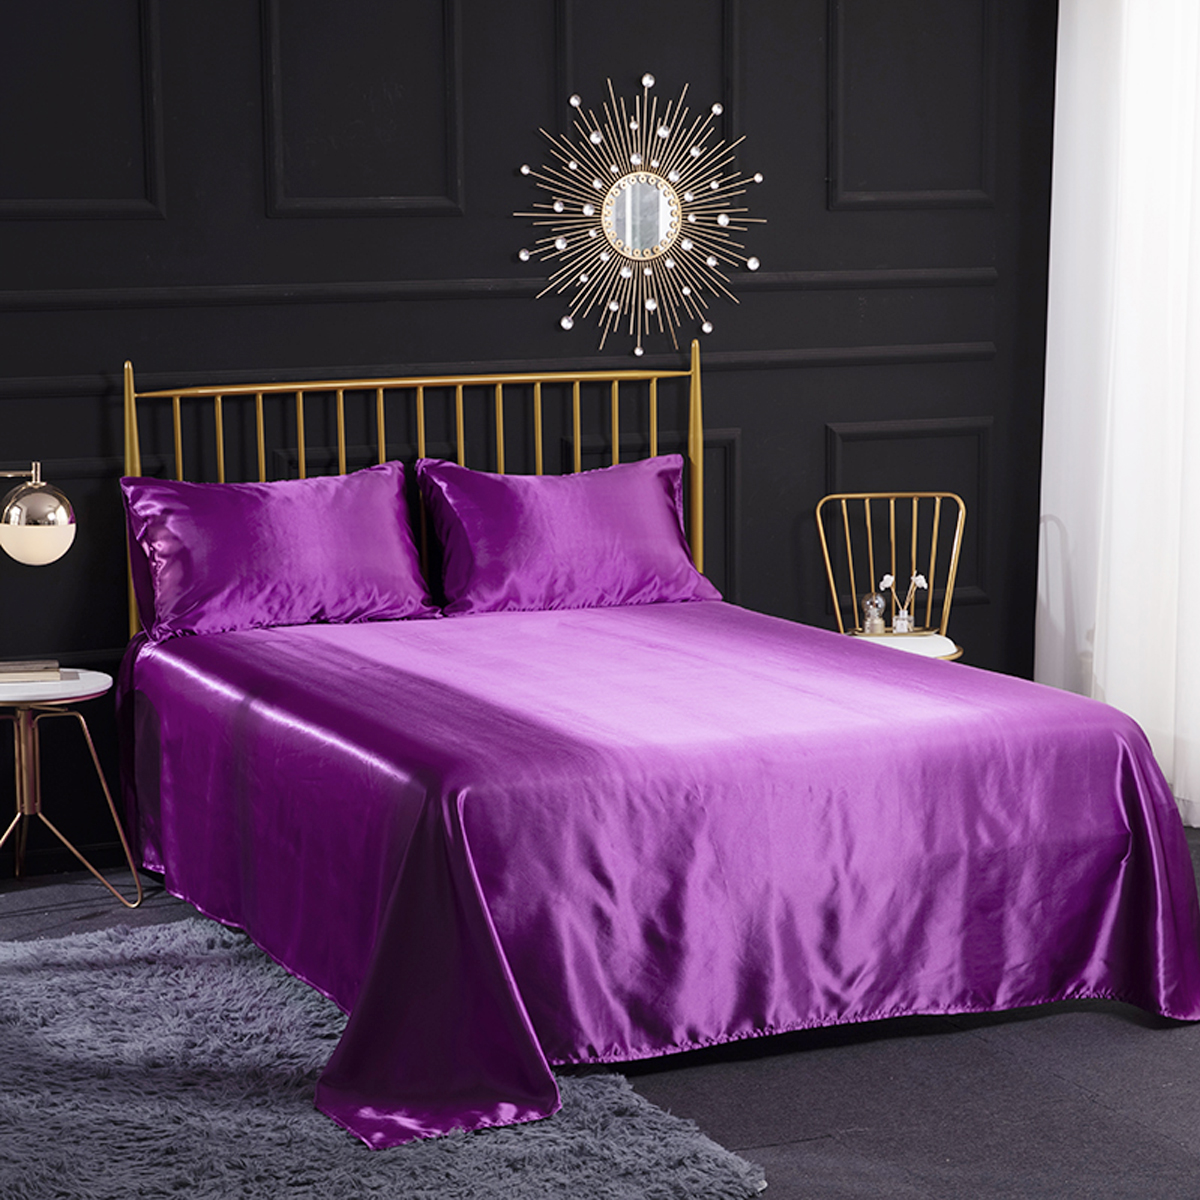 Soft Silky Sheets: Are They Worth the Expense?